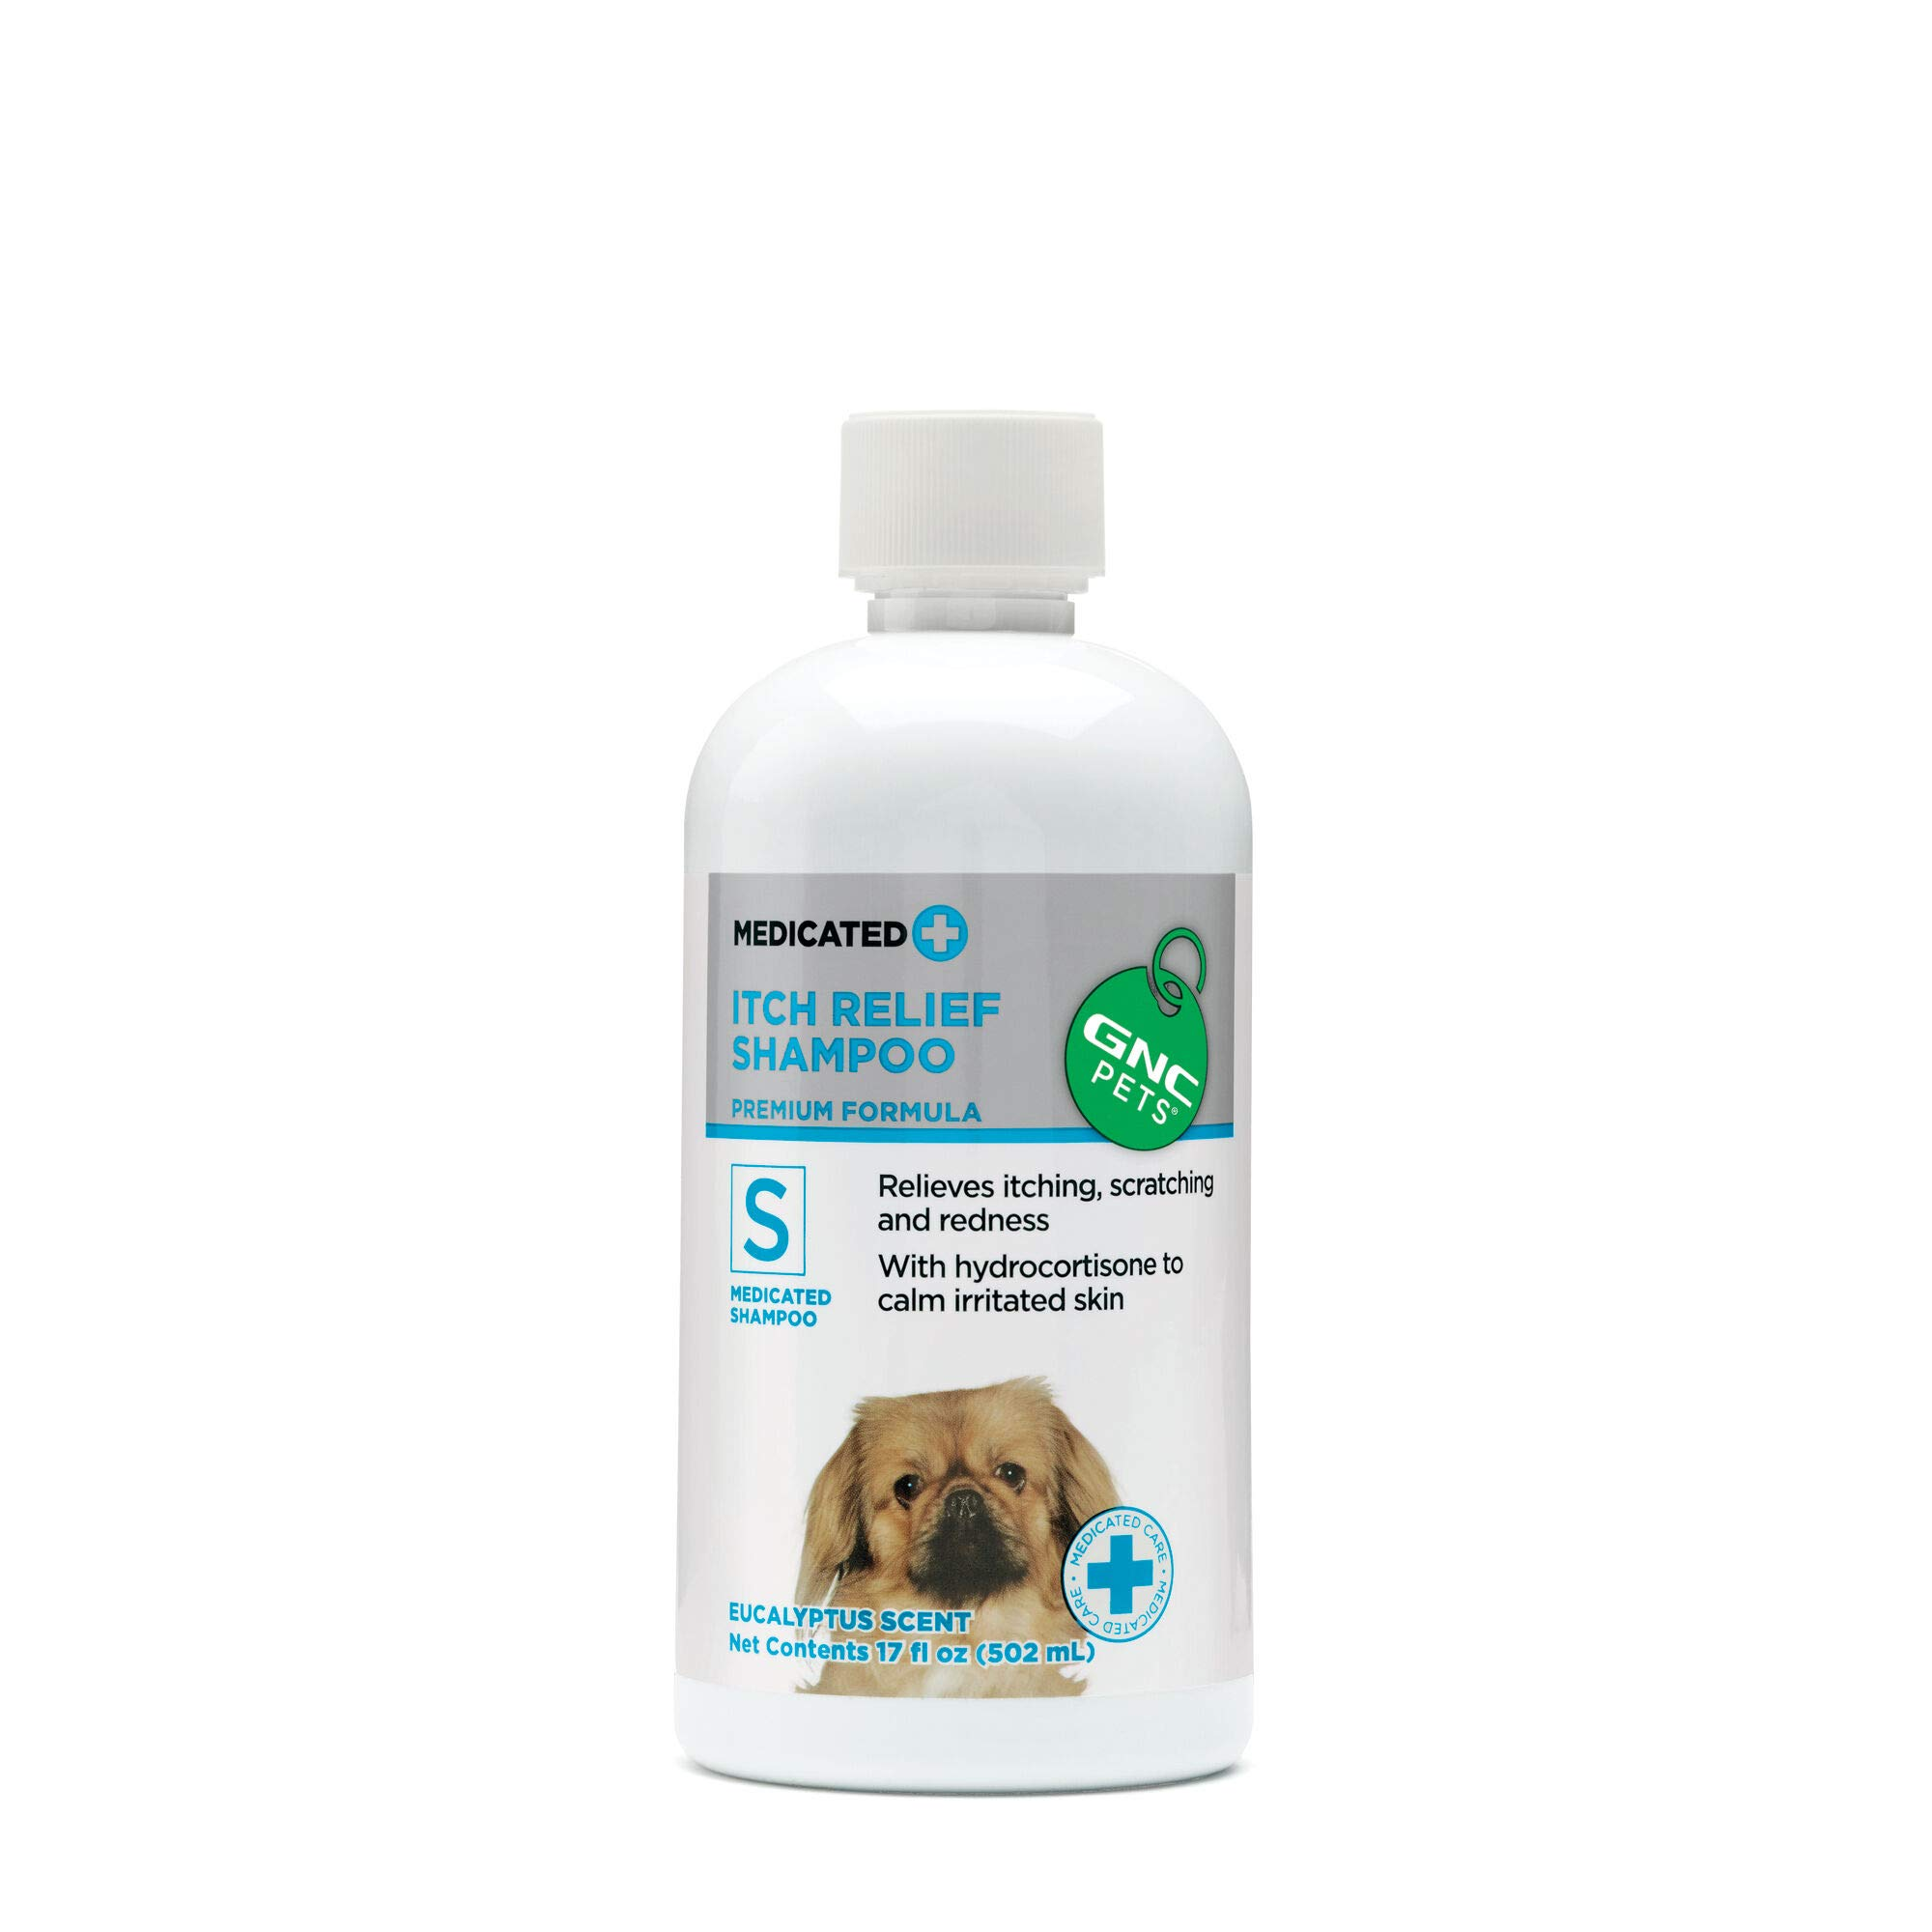 GNC Pets Medicated Shampoos and Sprays for Dogs   Dog Shampoos Available in Multiple Scents   Shampoo for Dogs, Great for All Dogs With Sensitive Skin, Calming and Soothing